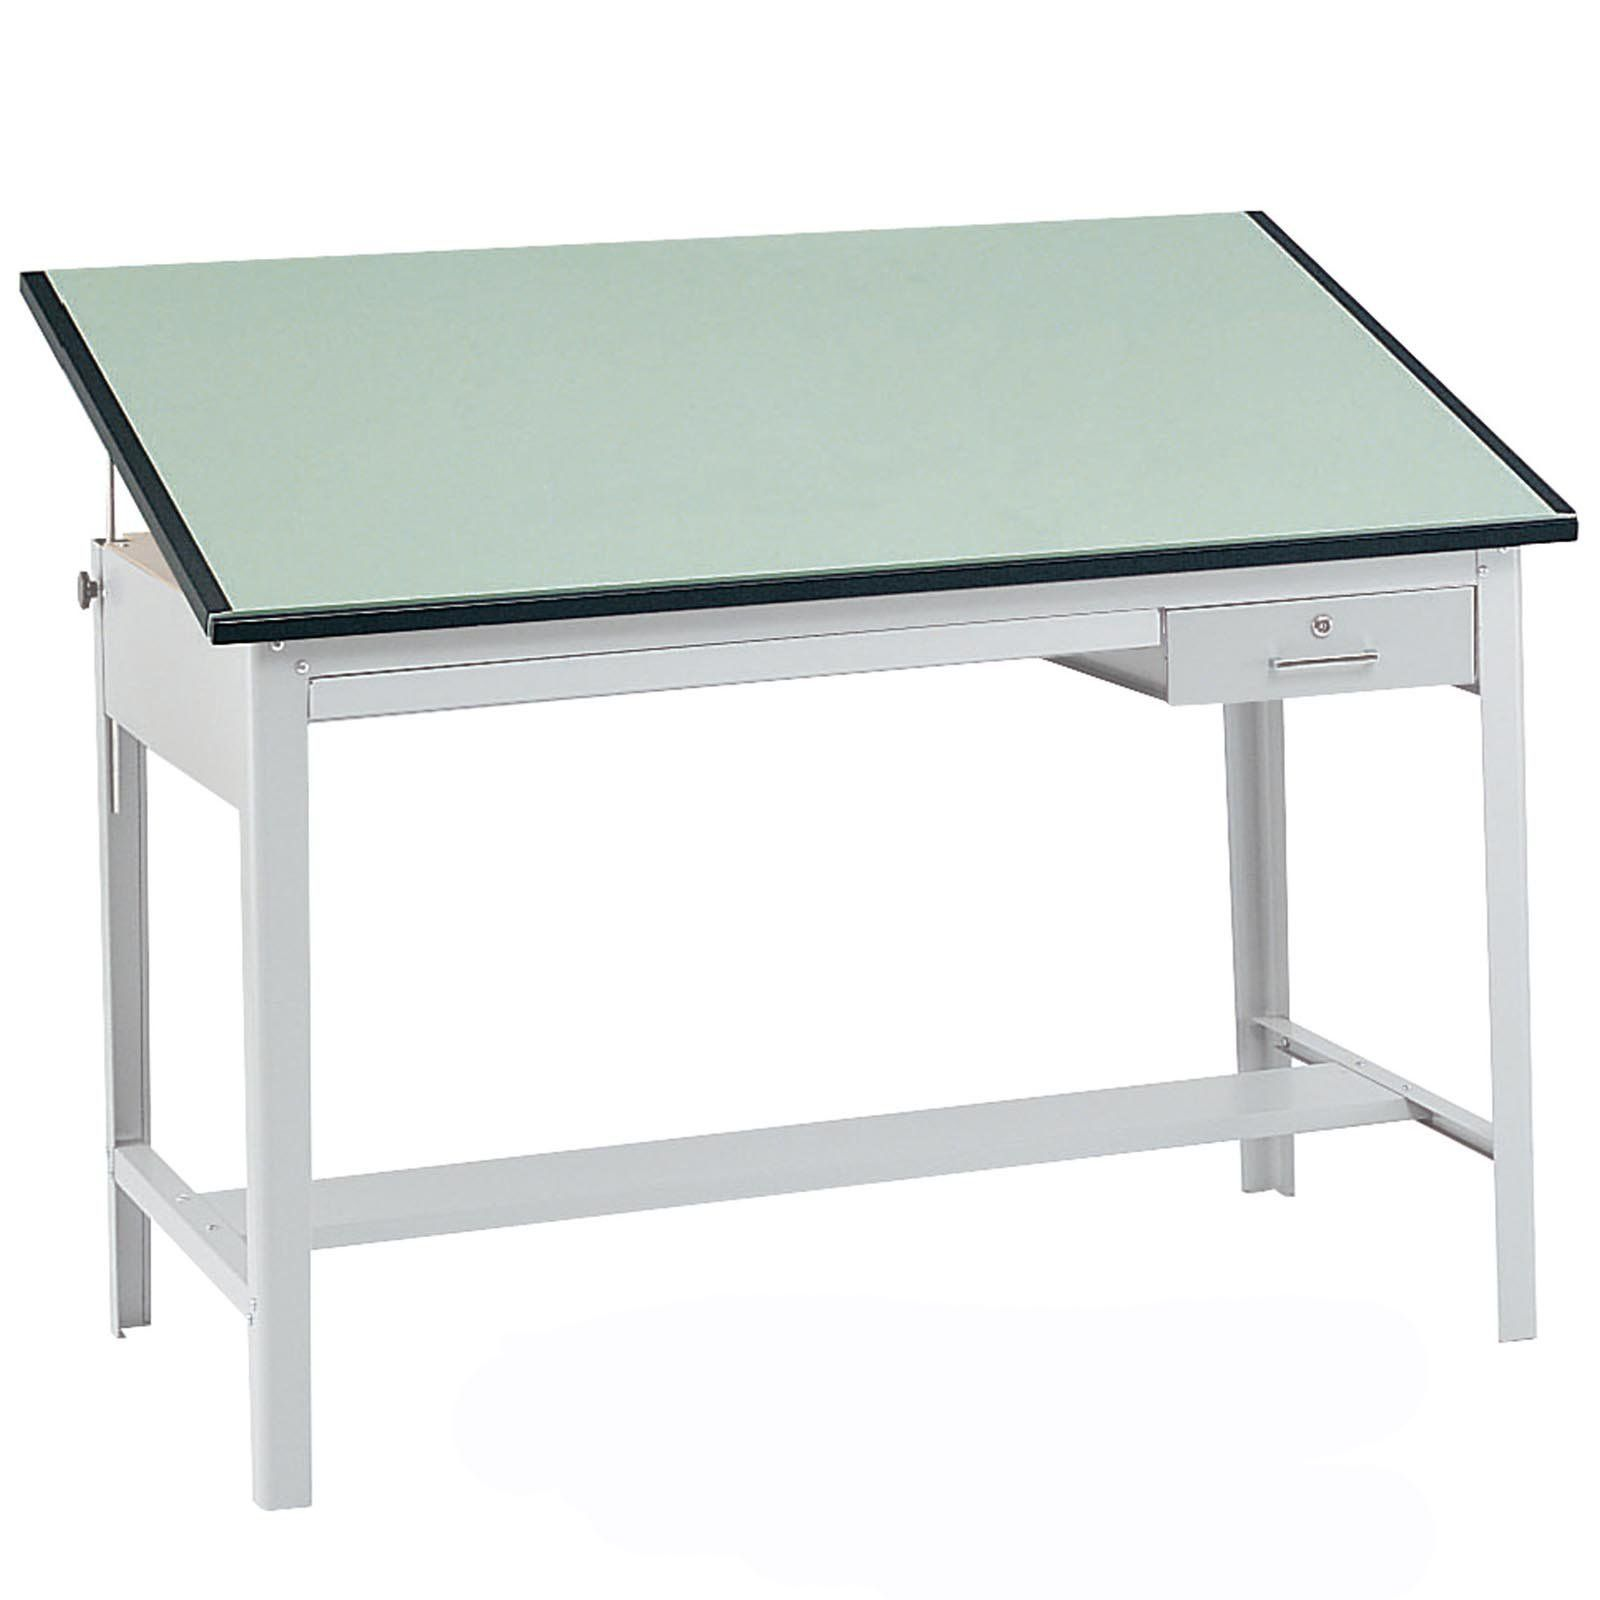 Safco Precision Drafting Table   $1054.98 @hayneedle